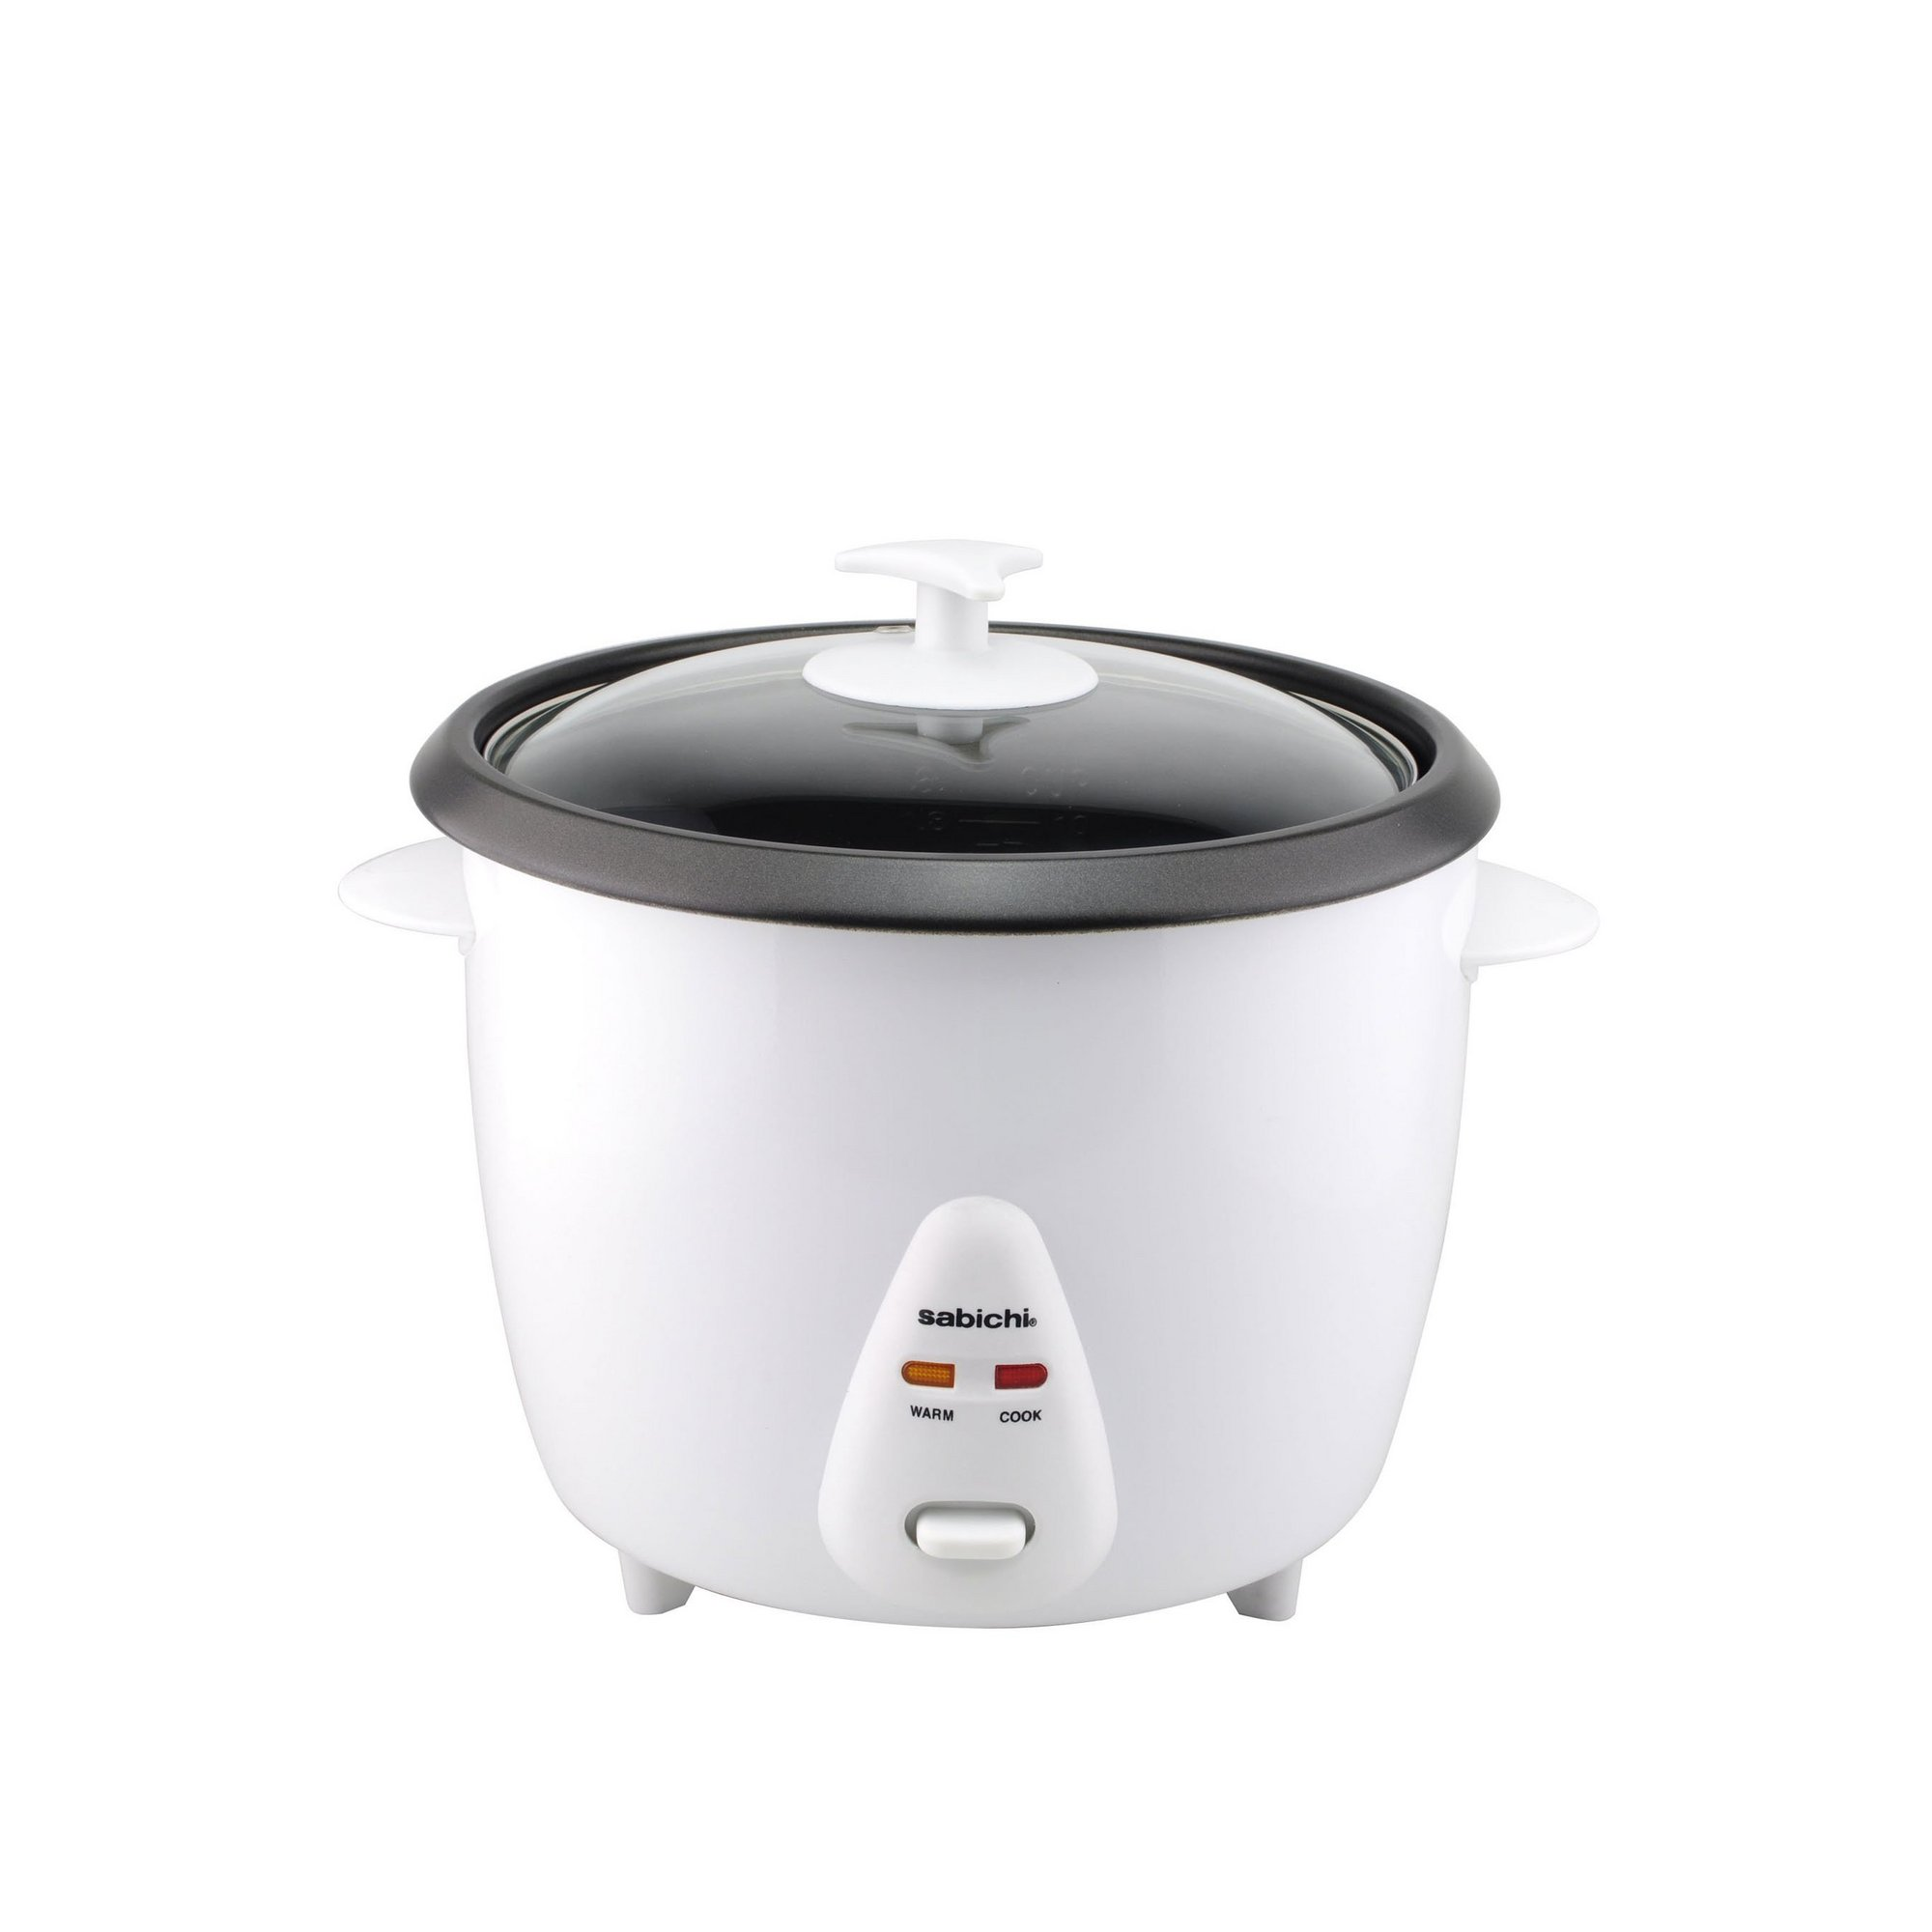 Image of Sabichi 1.8 Litre Rice Cooker